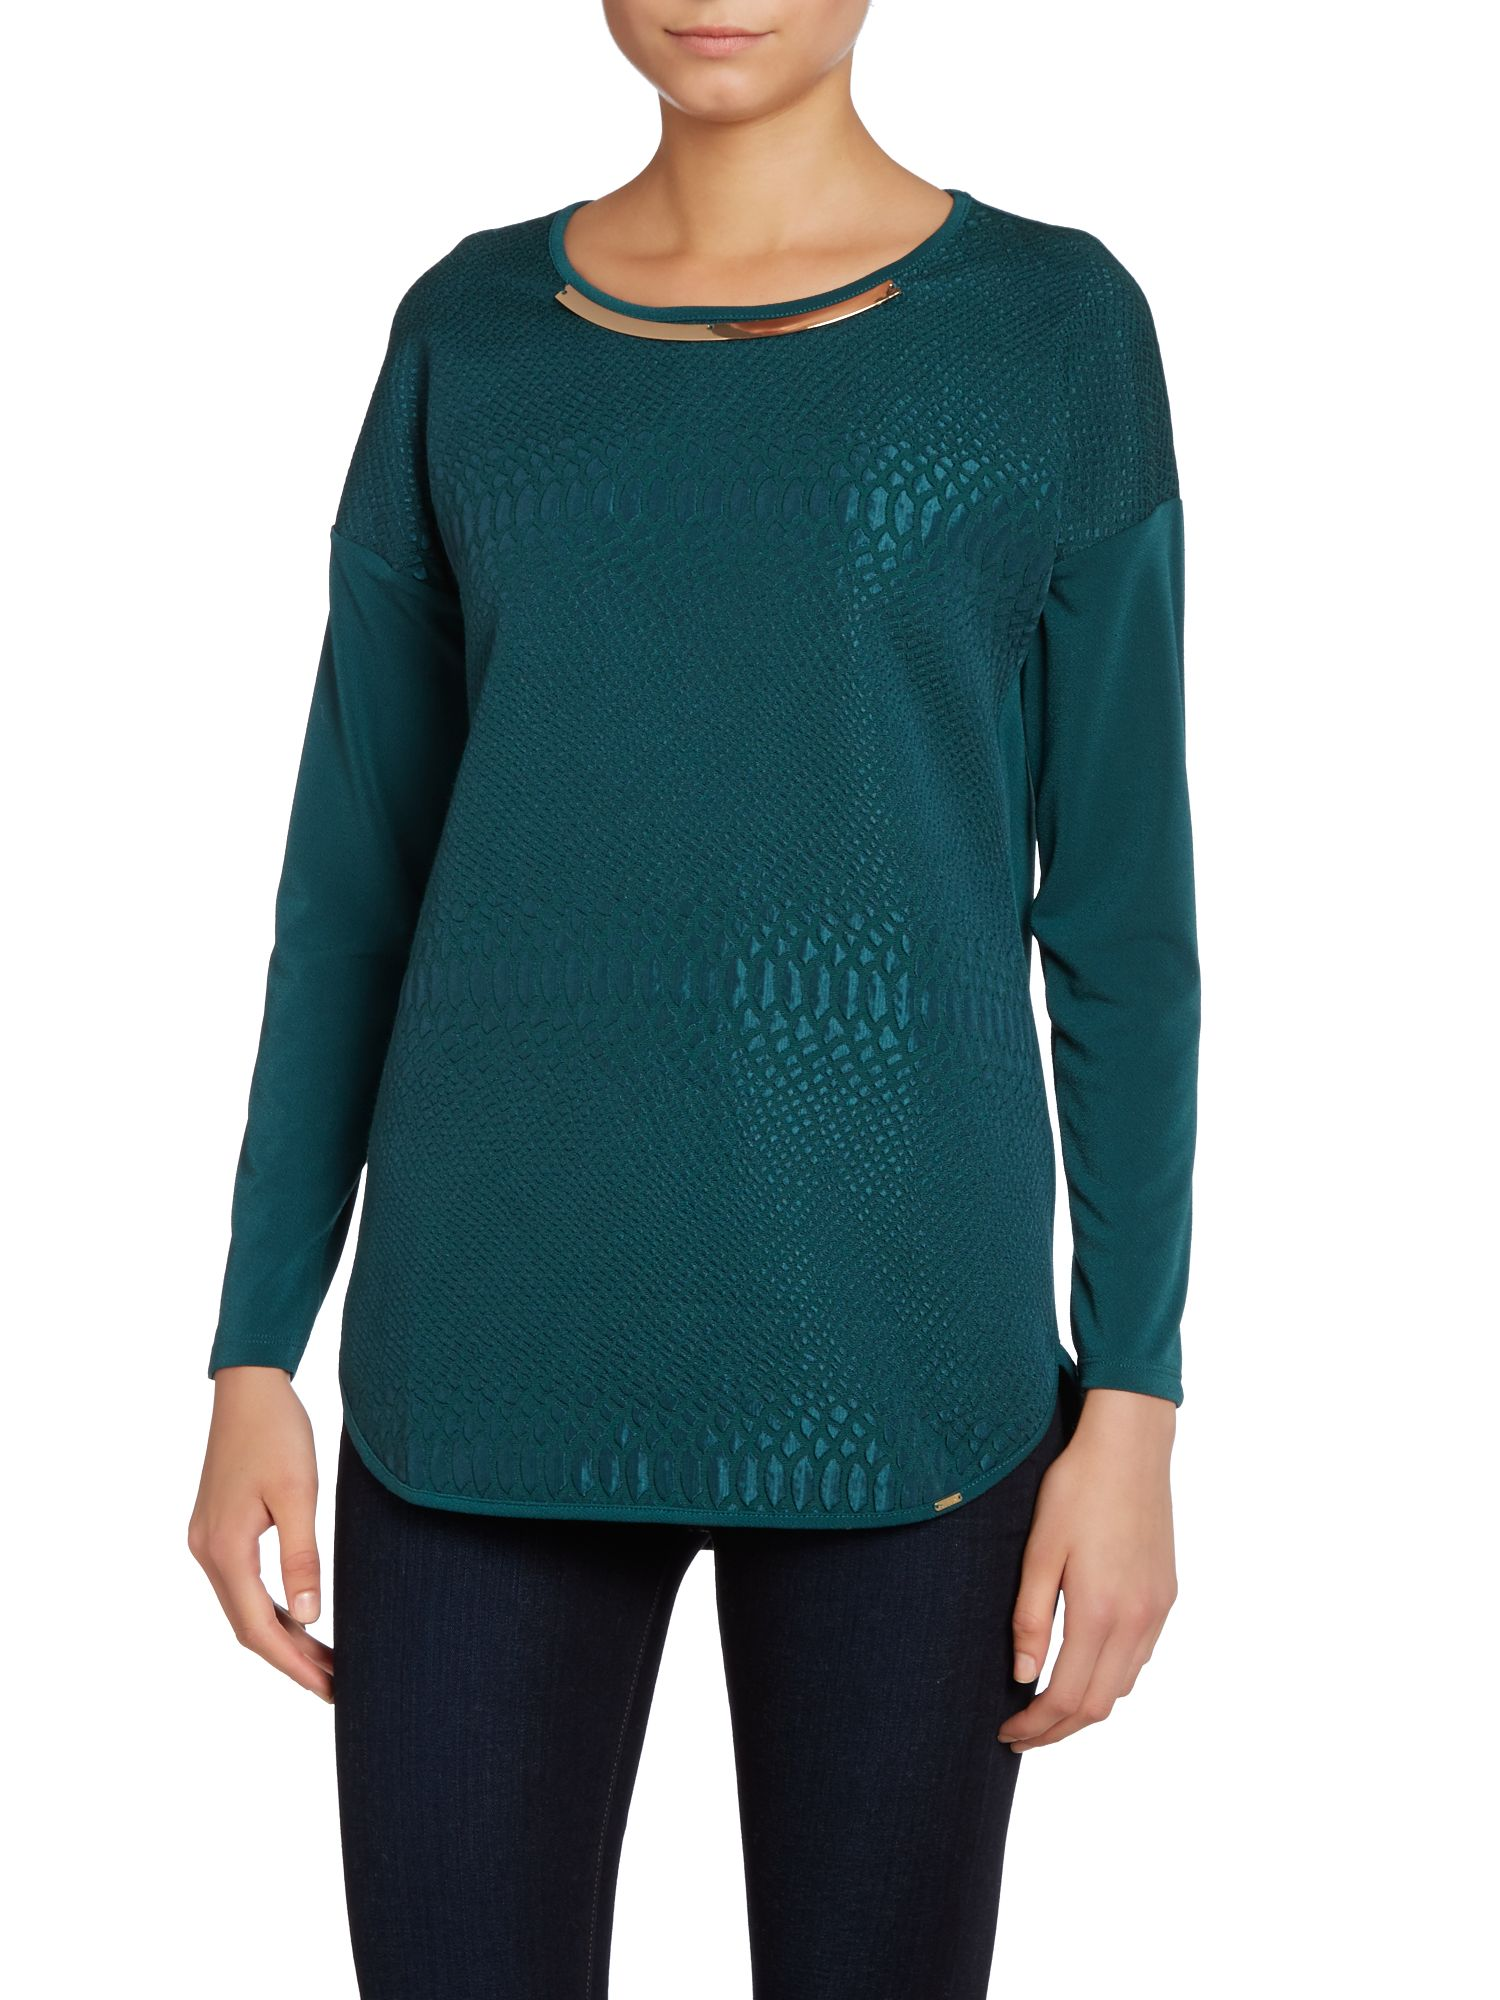 Long sleeve croc textured top